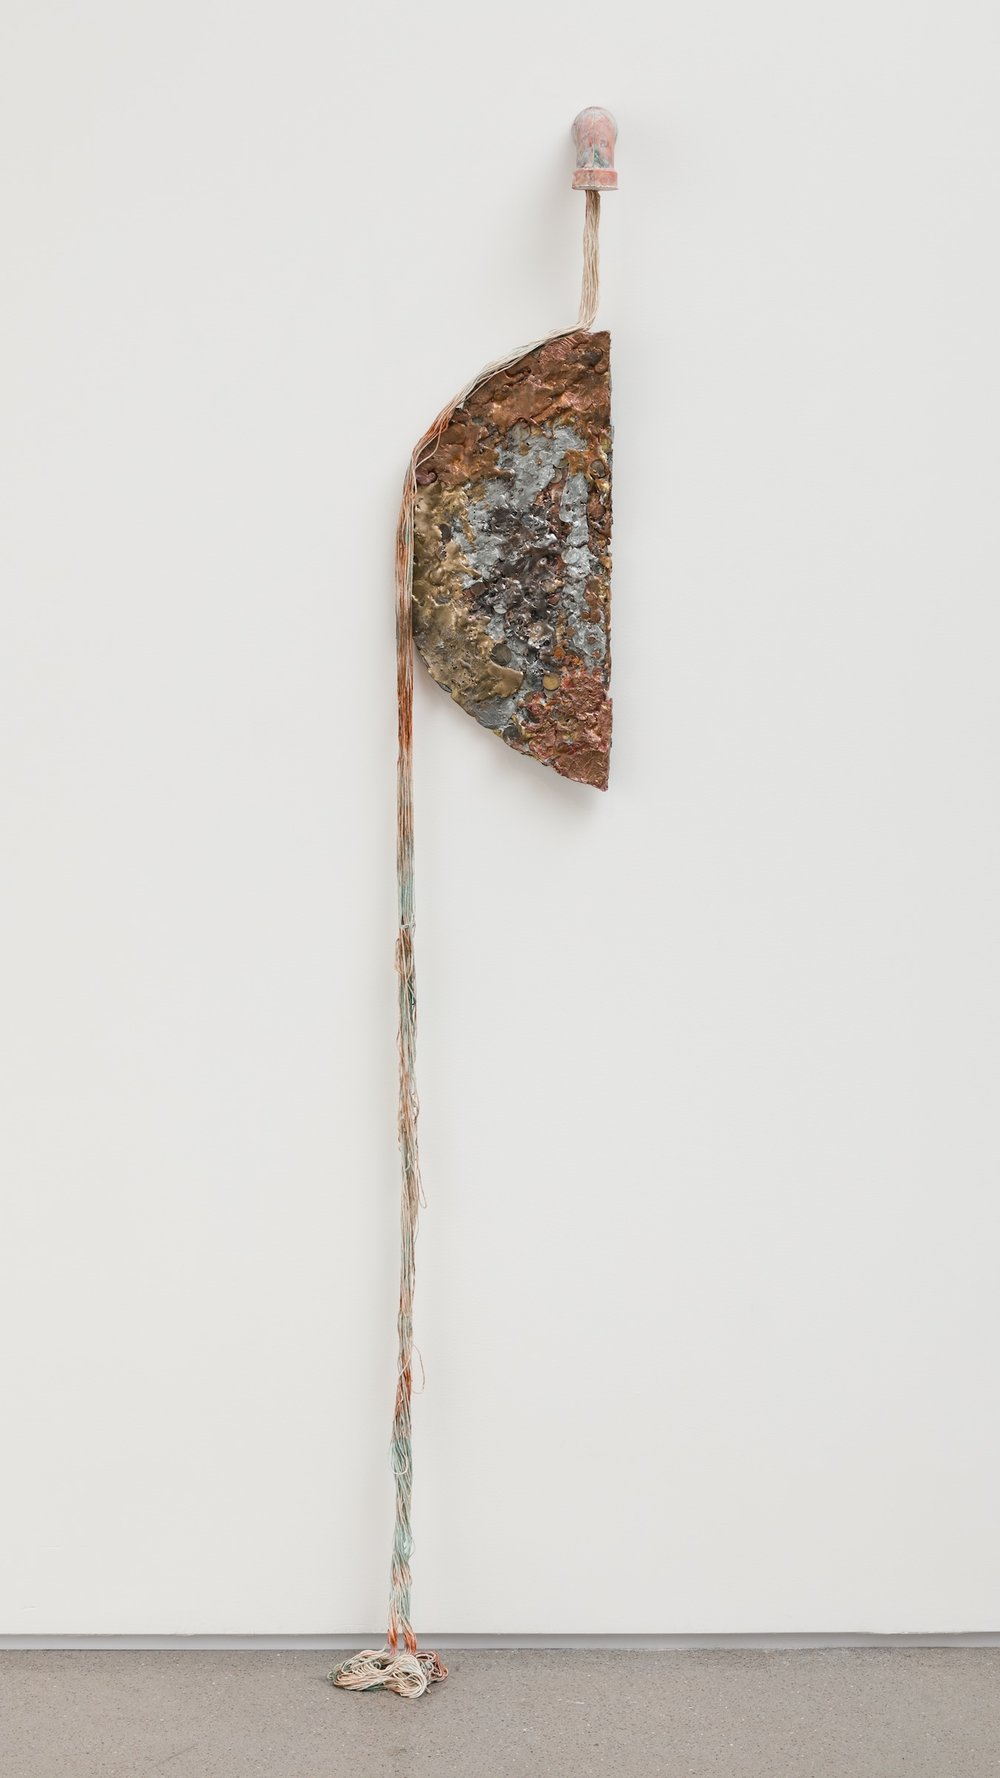 Jory Rabinovitz,  Receiving (Divided),  2015, melted currency, unsold sculptures, Verdigris, iron oxide, zinc white, Dimensions variable